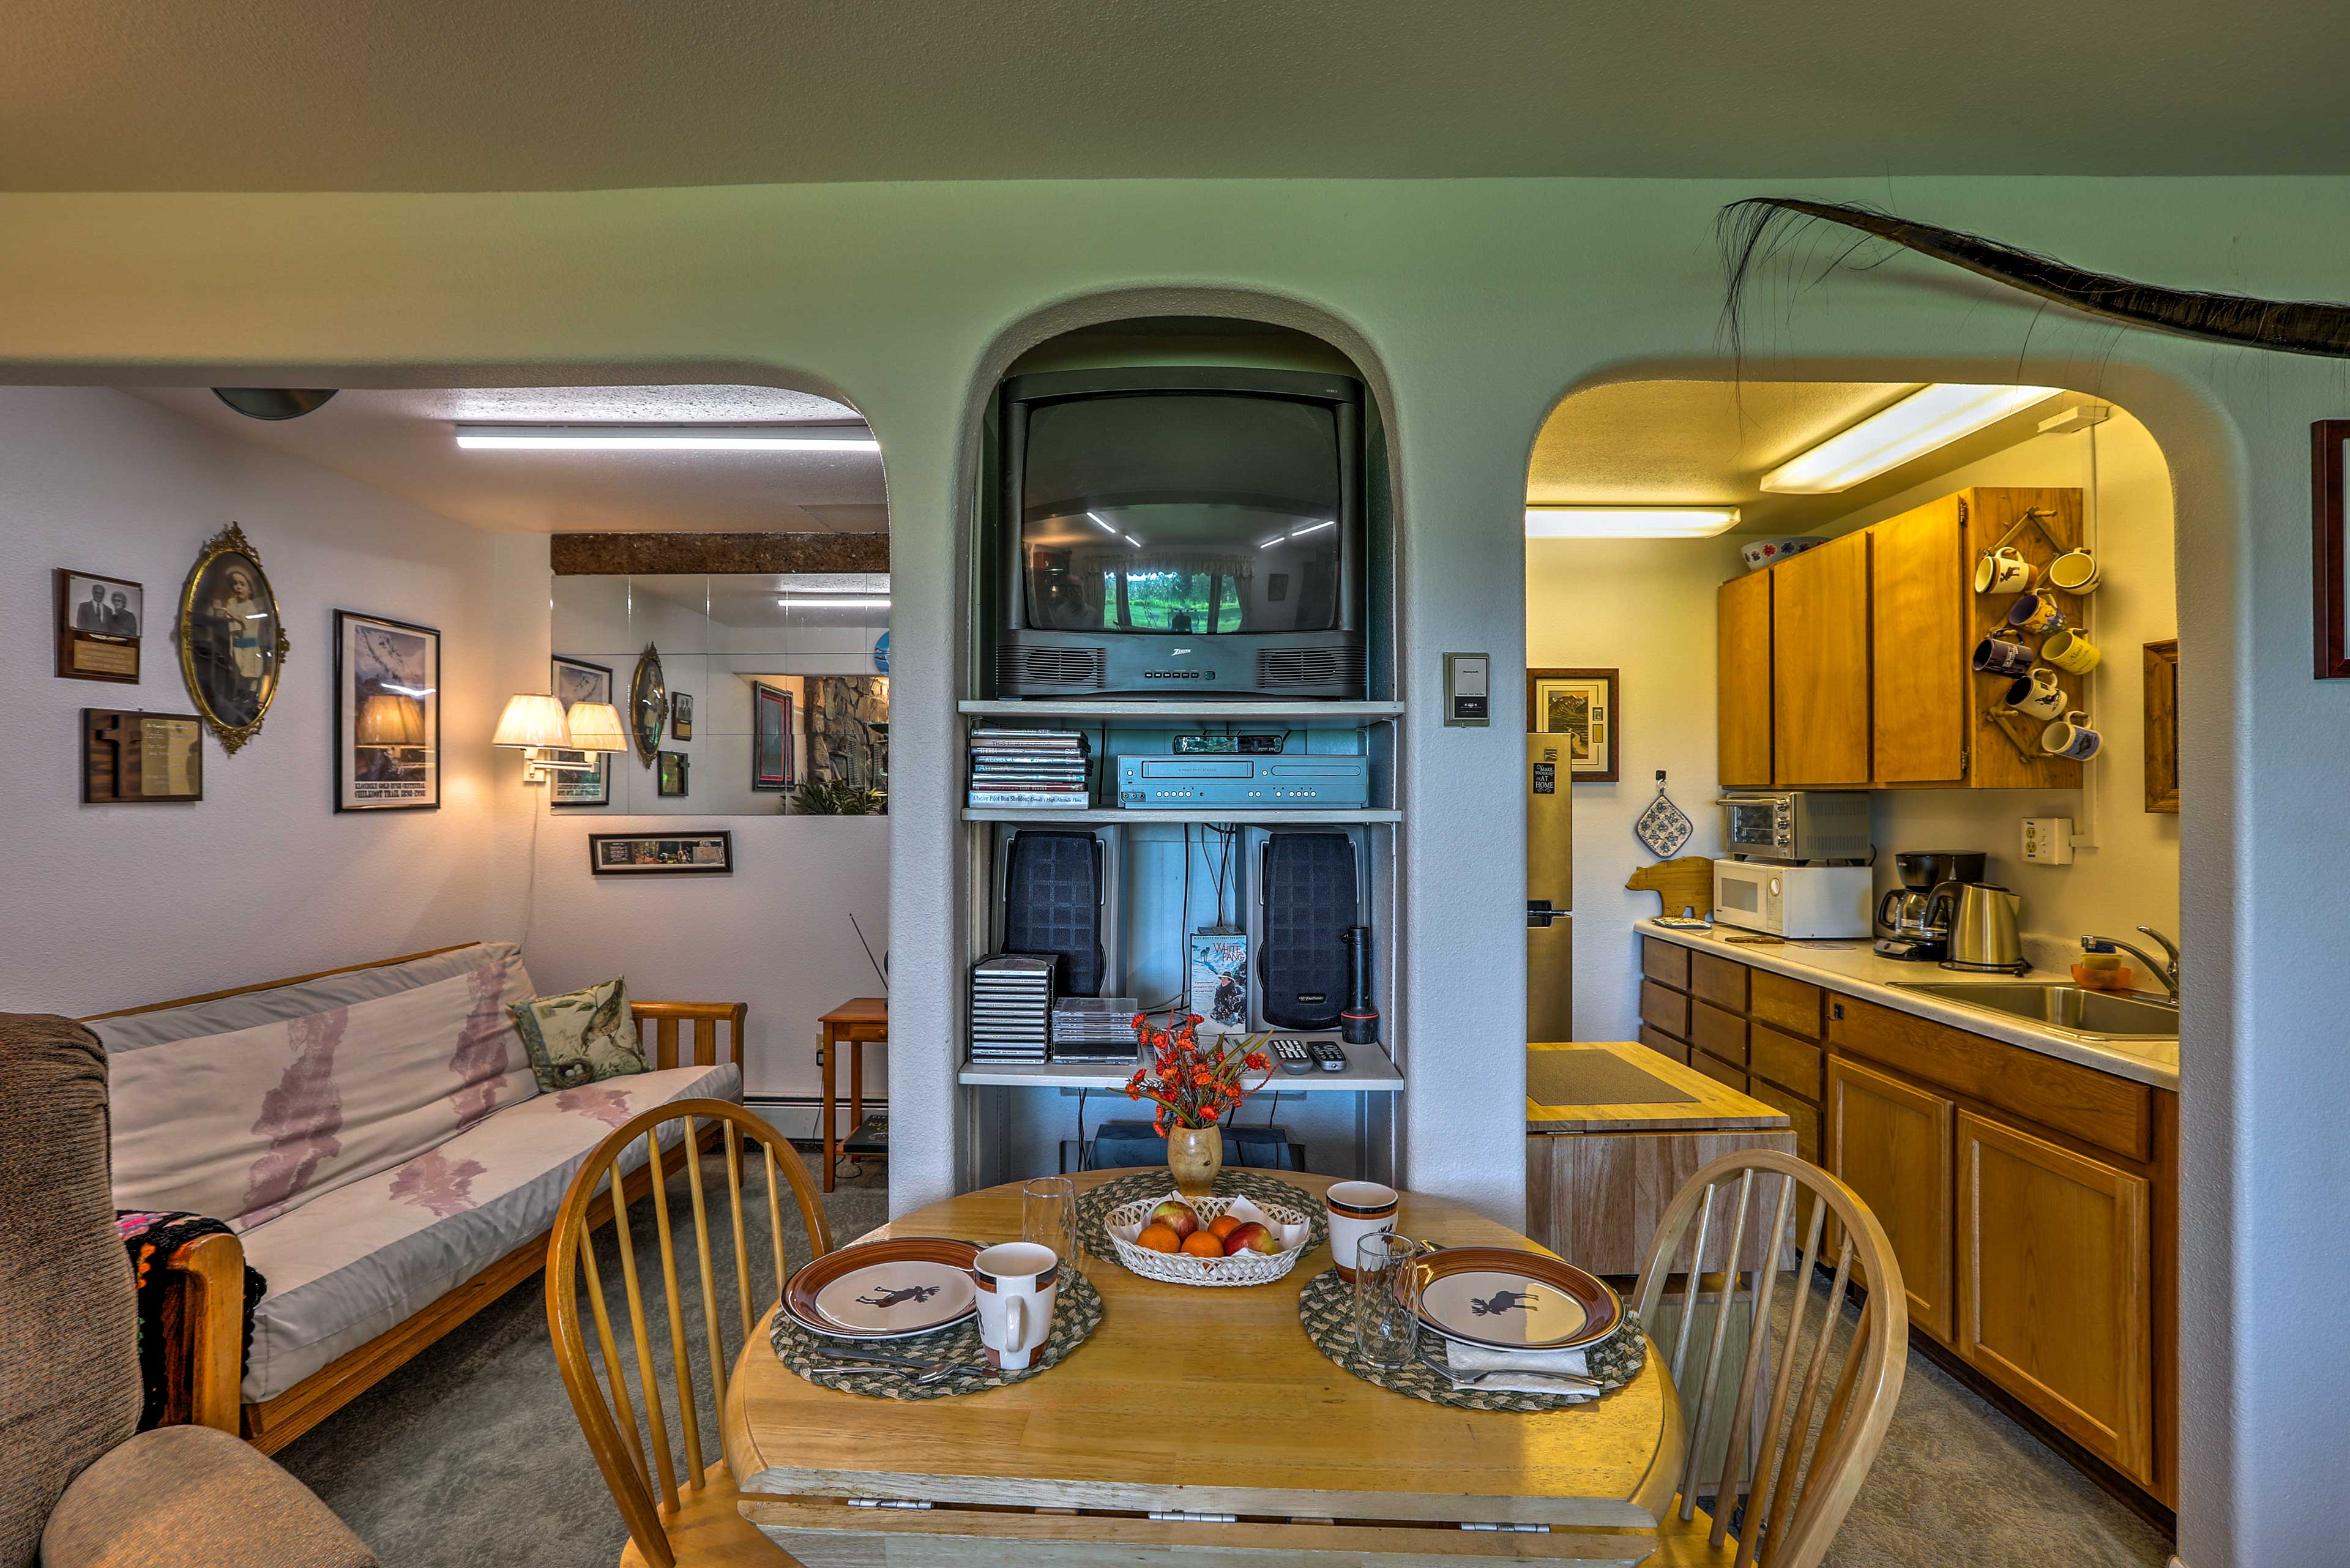 Enjoy dinner around the 4-person dining table adjacent to the kitchen.